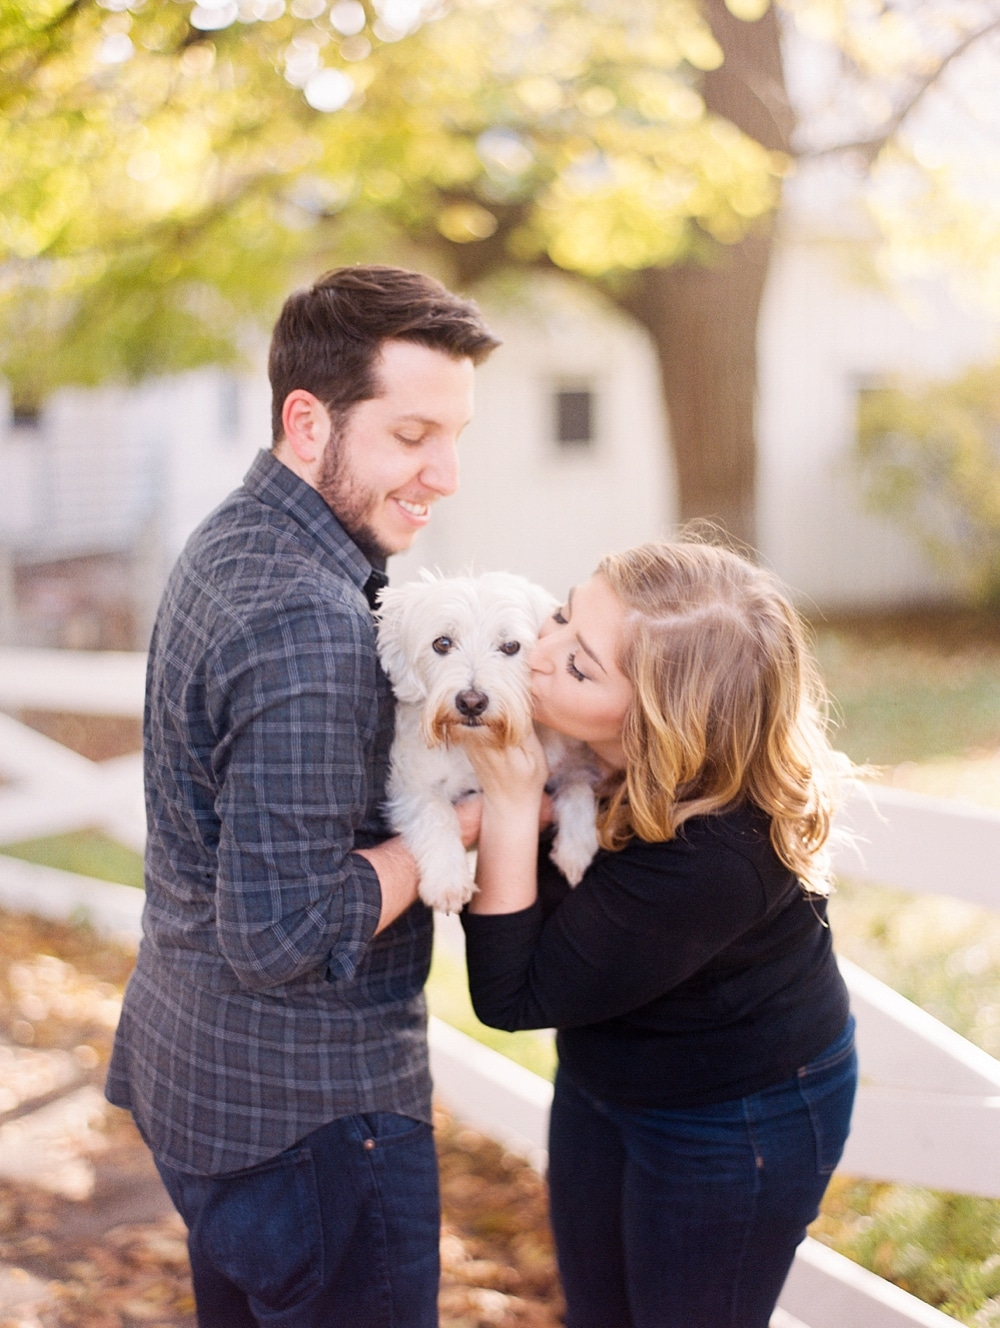 Kristin-La-Voie-Photography-Chicago-Wedding-Photographer-South-Pond-Dog-Engagement-Lincoln-Park-54